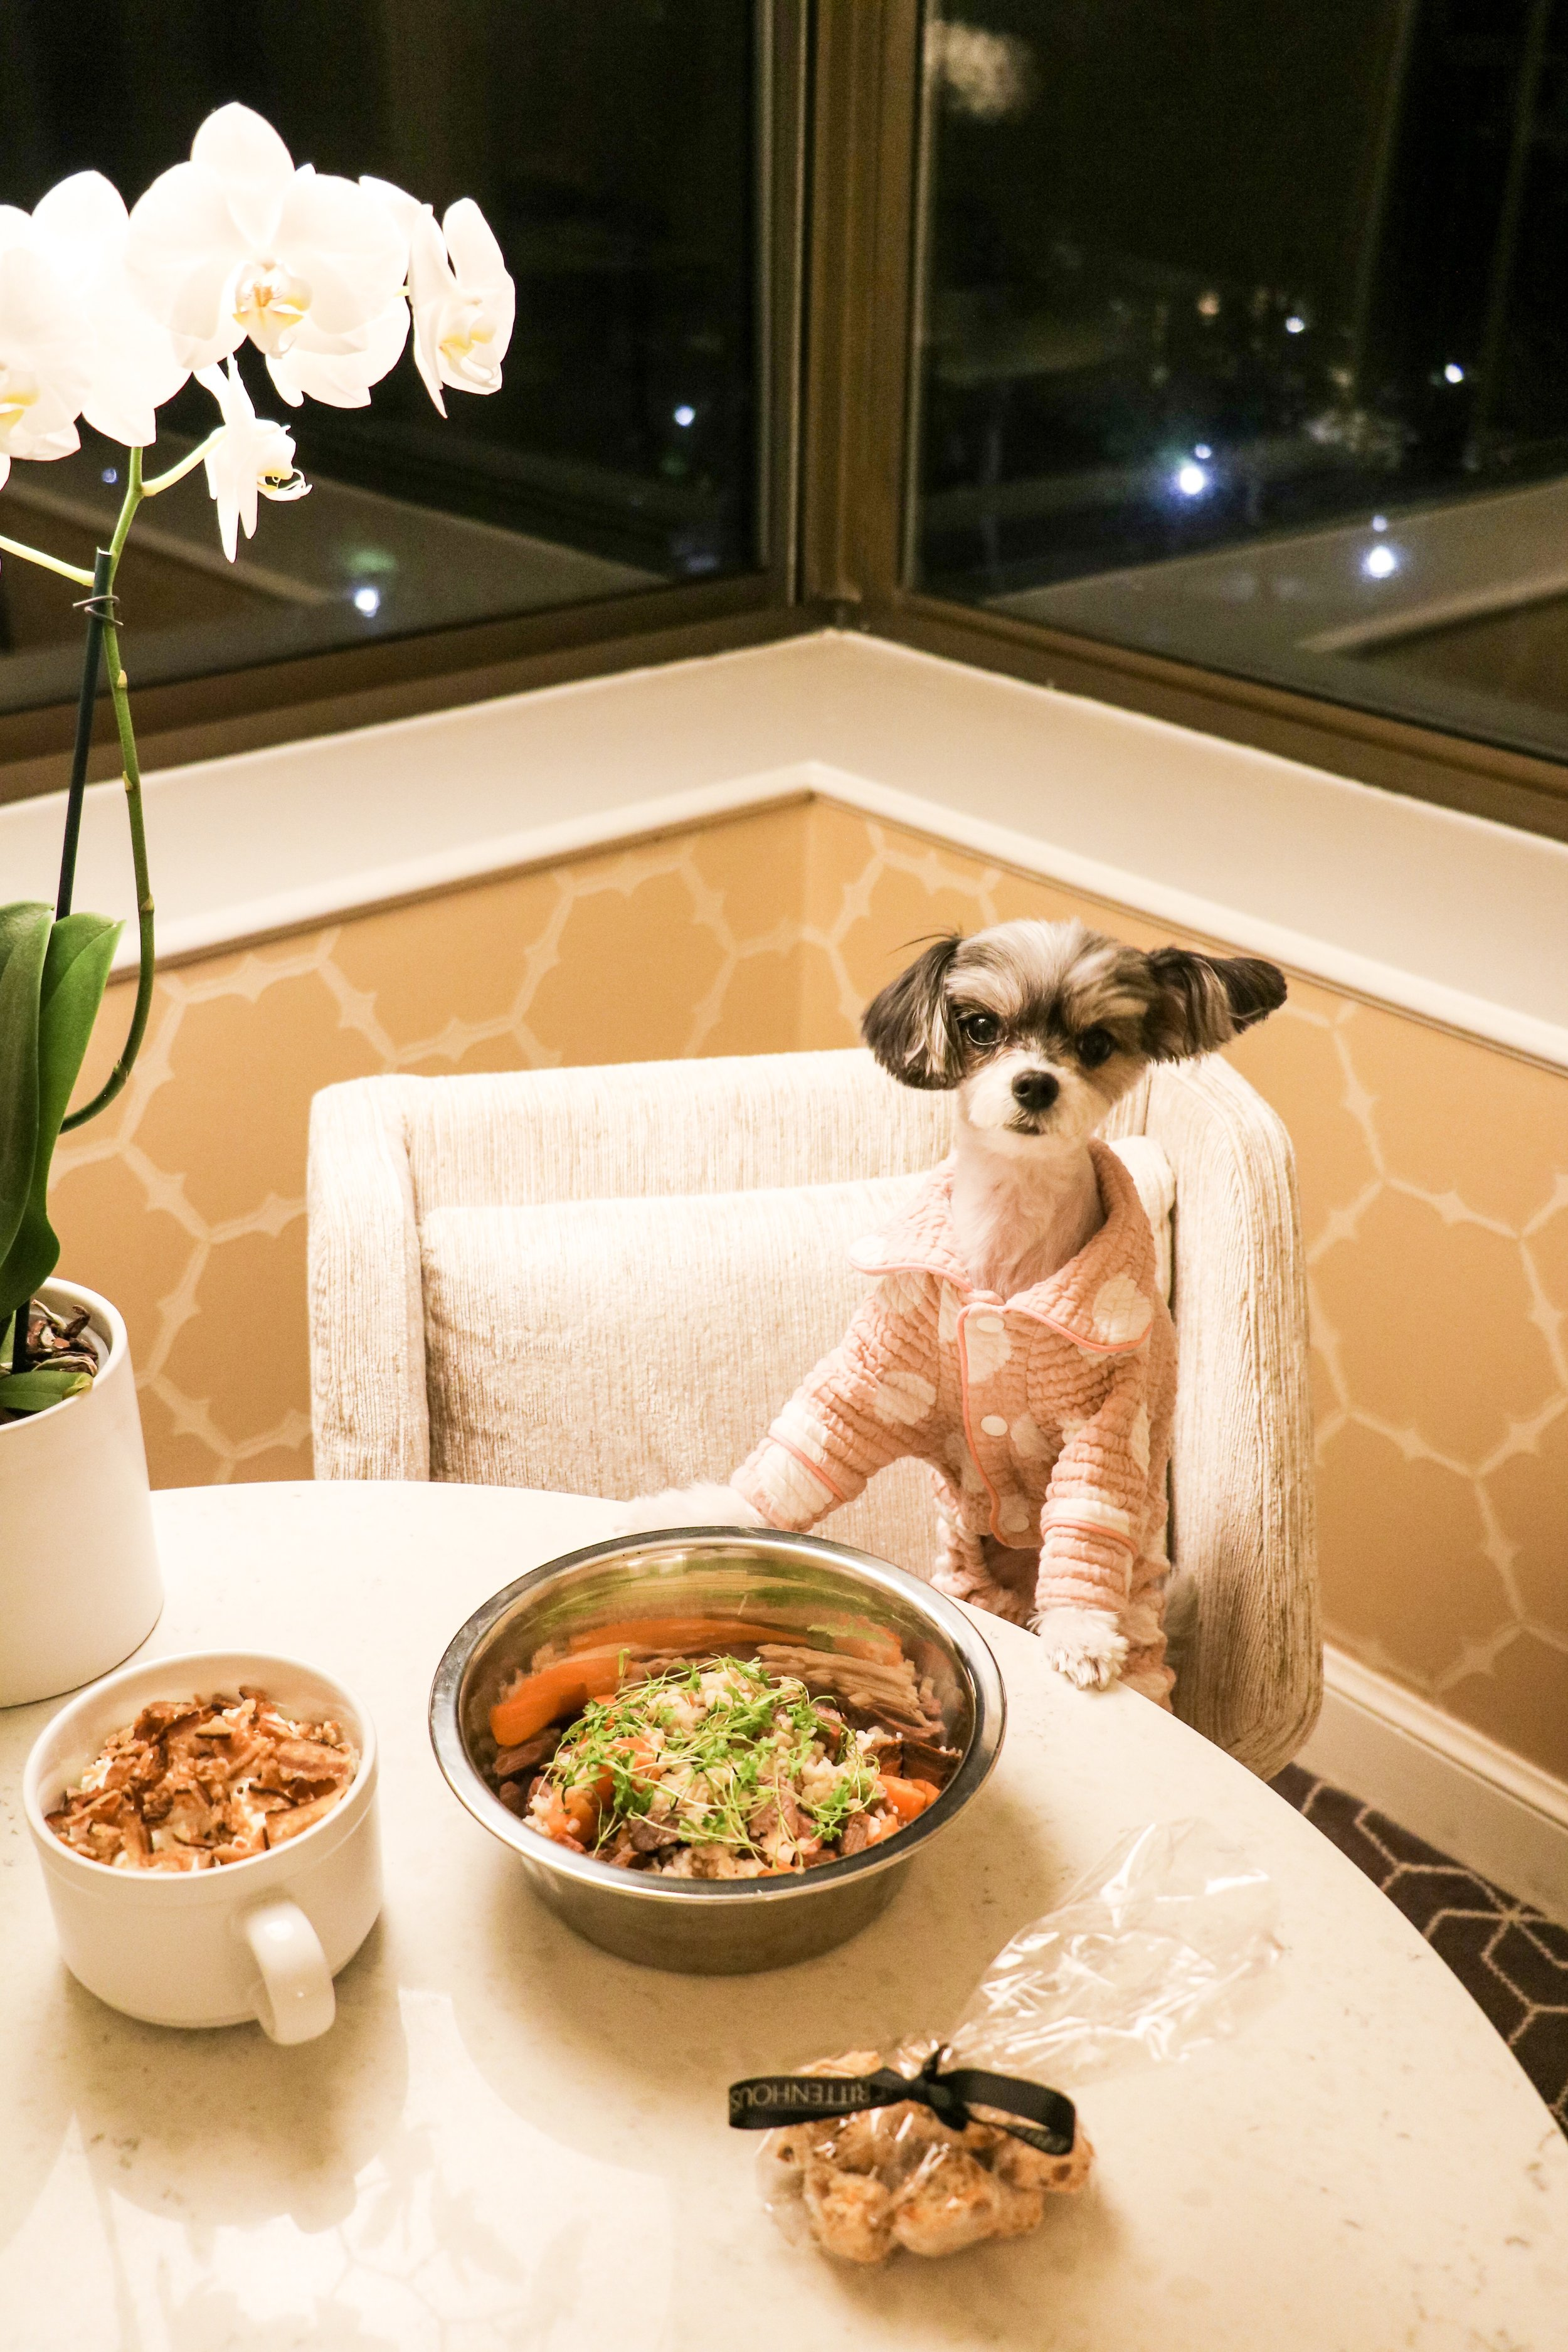 Room service dinner for Tink!